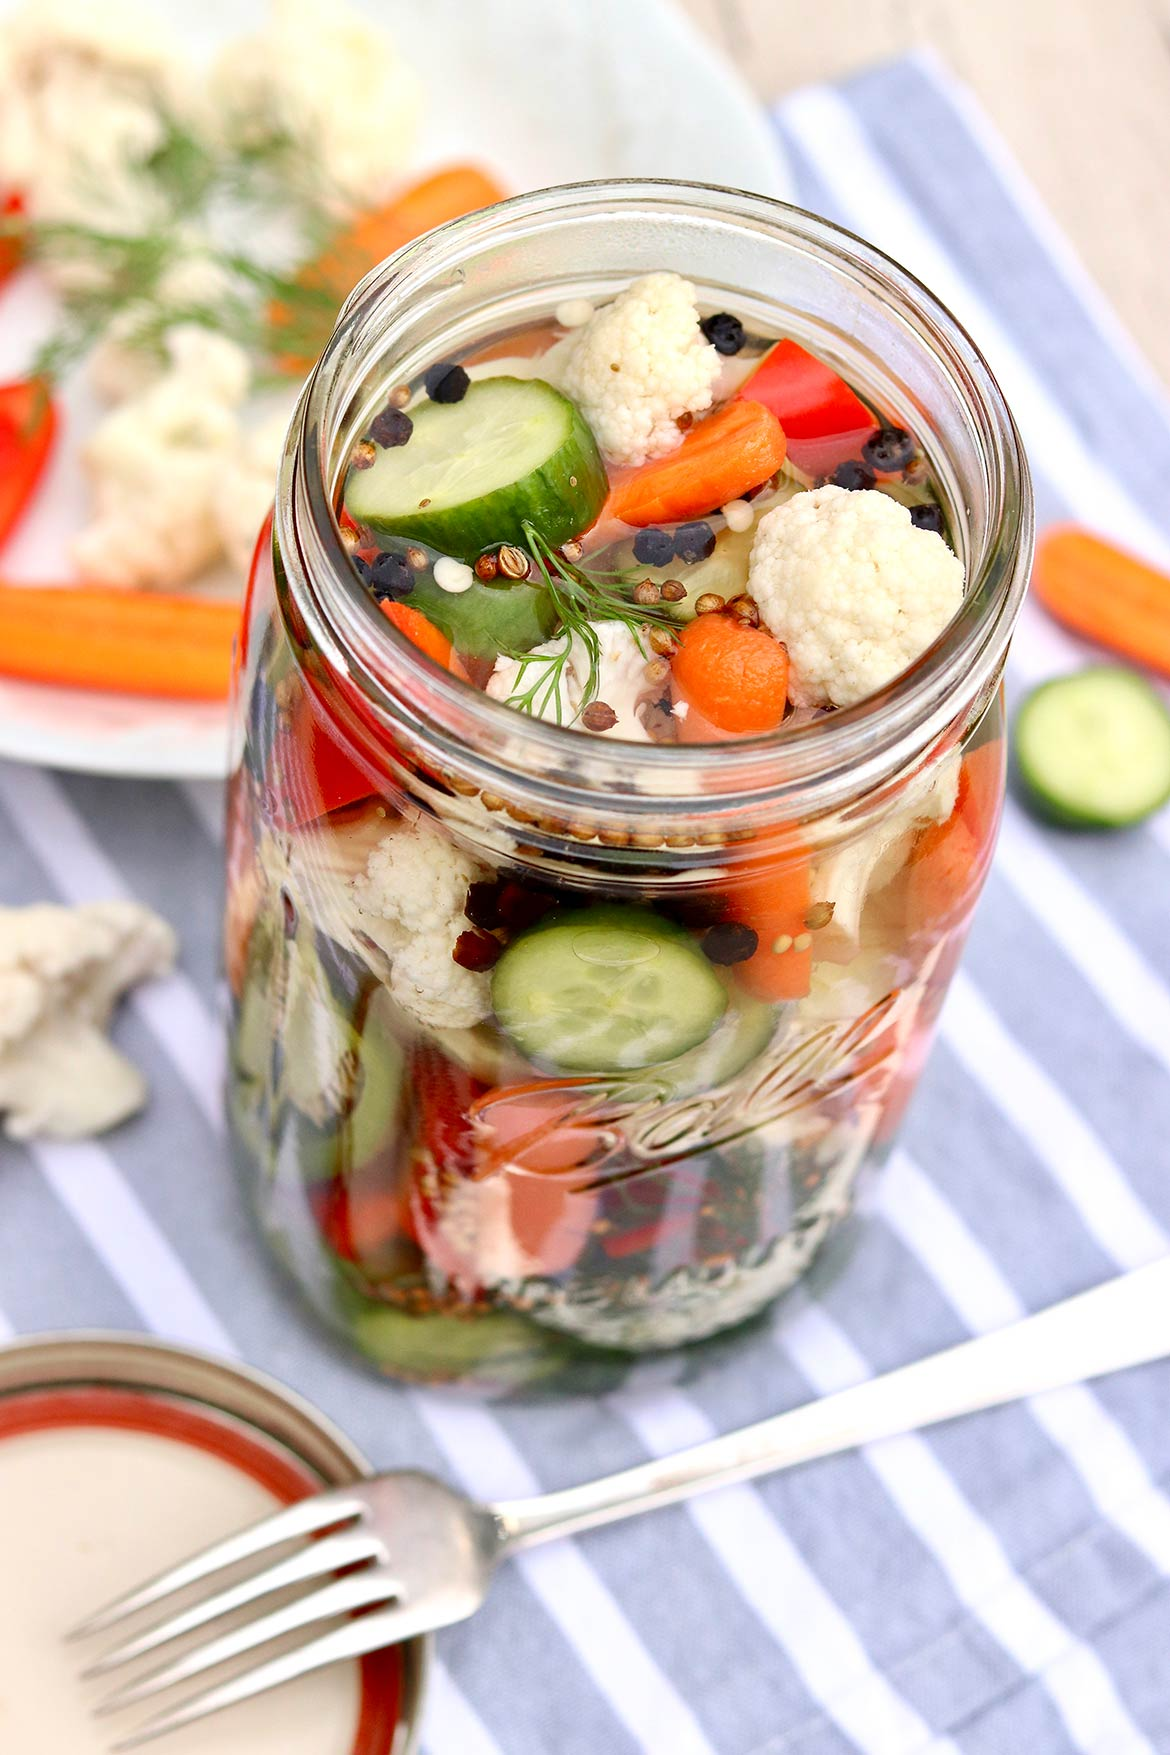 This quick and easy refrigerator method requires no canner or hot water bath and is a clever way to use any odds and ends in your produce drawer!